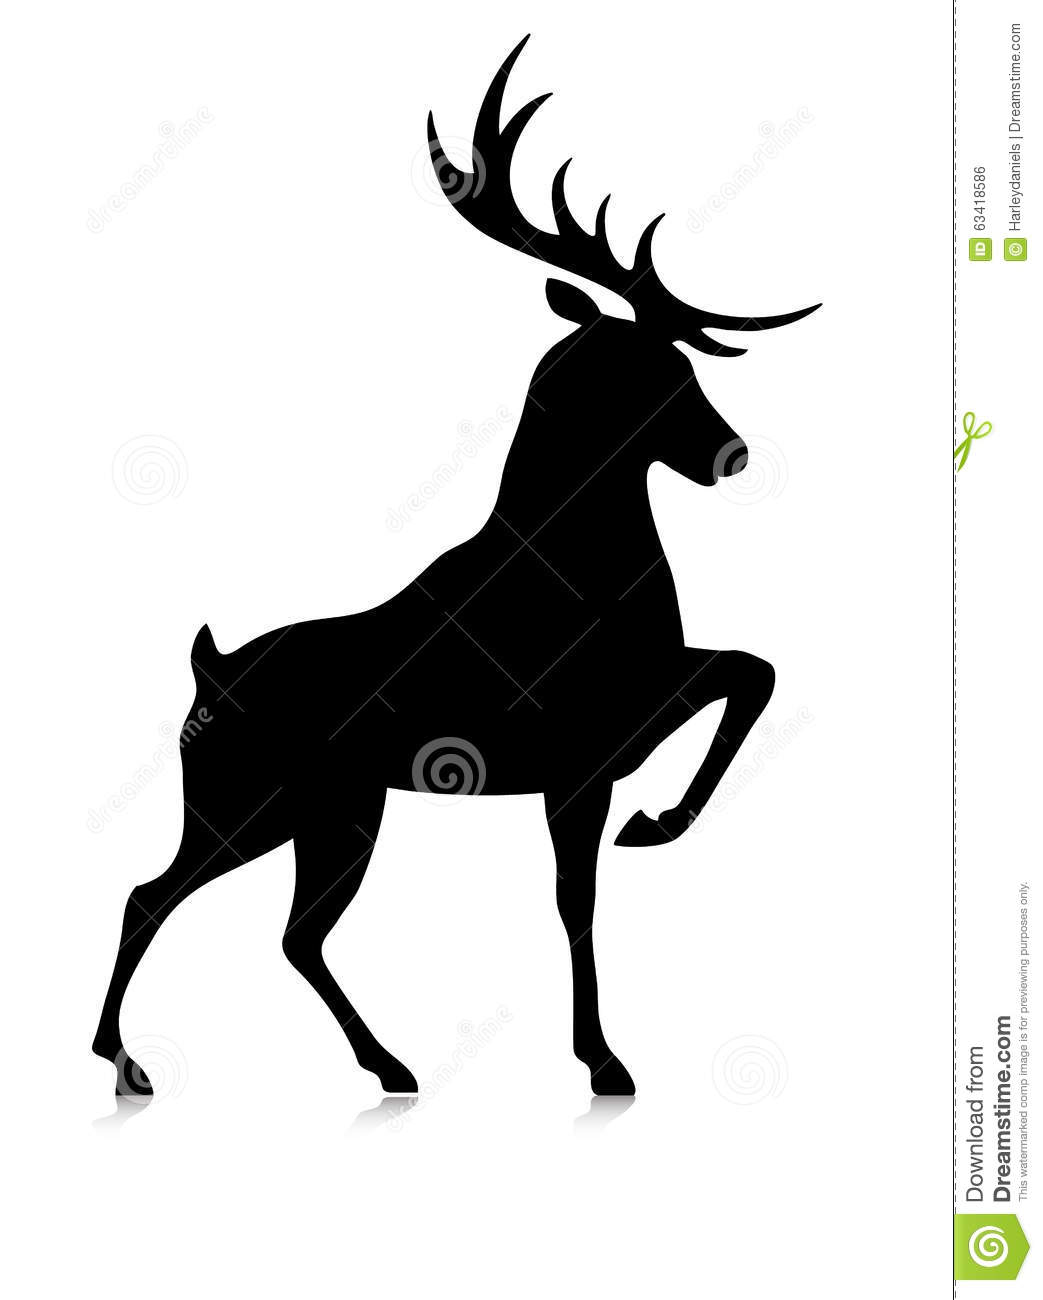 silhouette of a buck silhouette of the buck stock vector image 63418586 a of silhouette buck